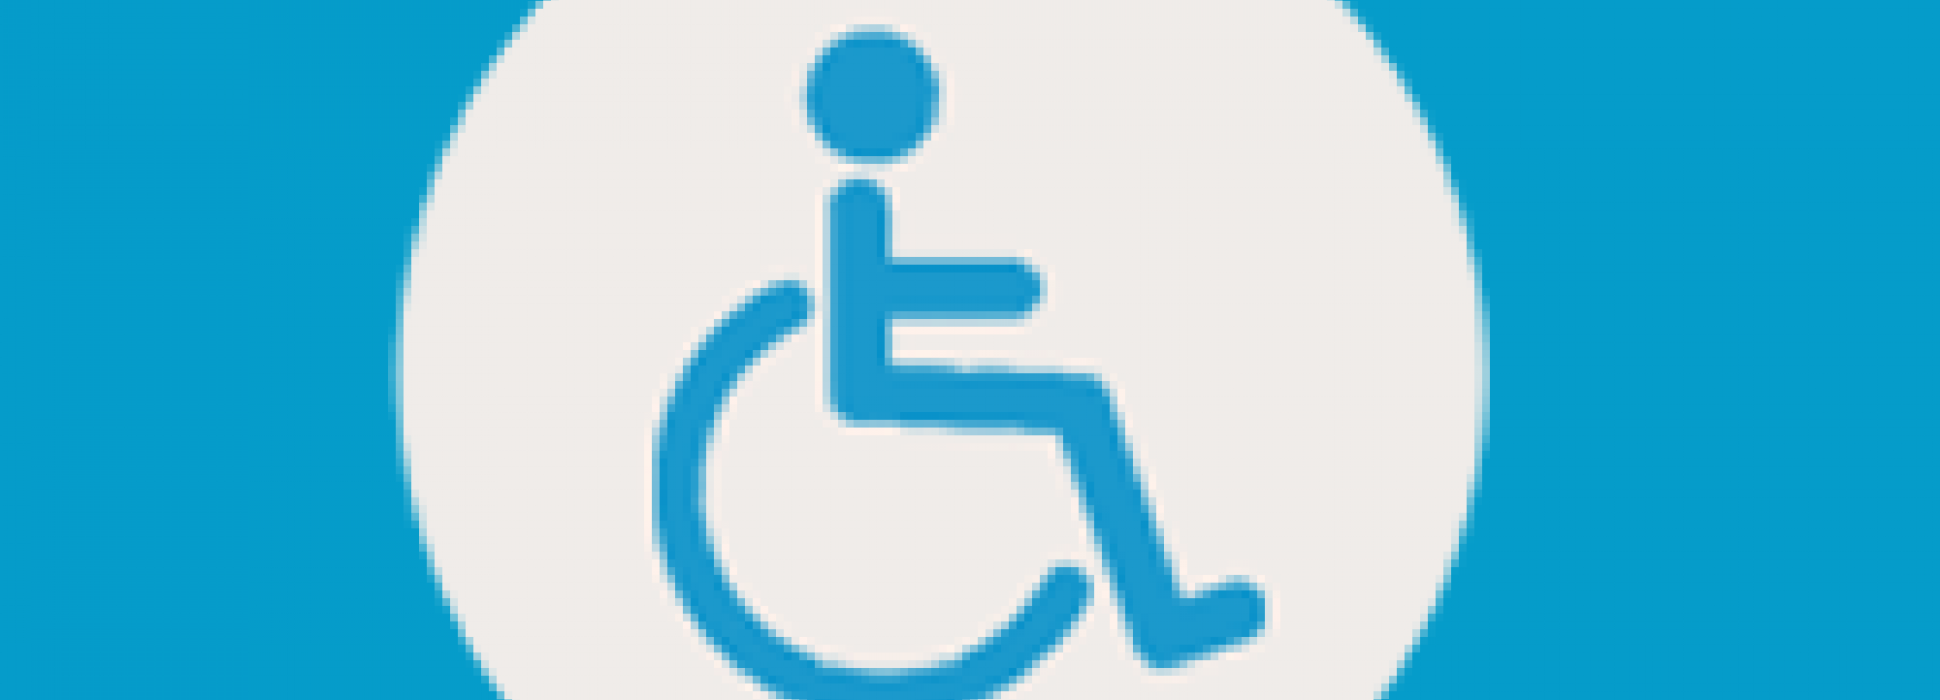 Our accommodations adapted to people with limited mobility